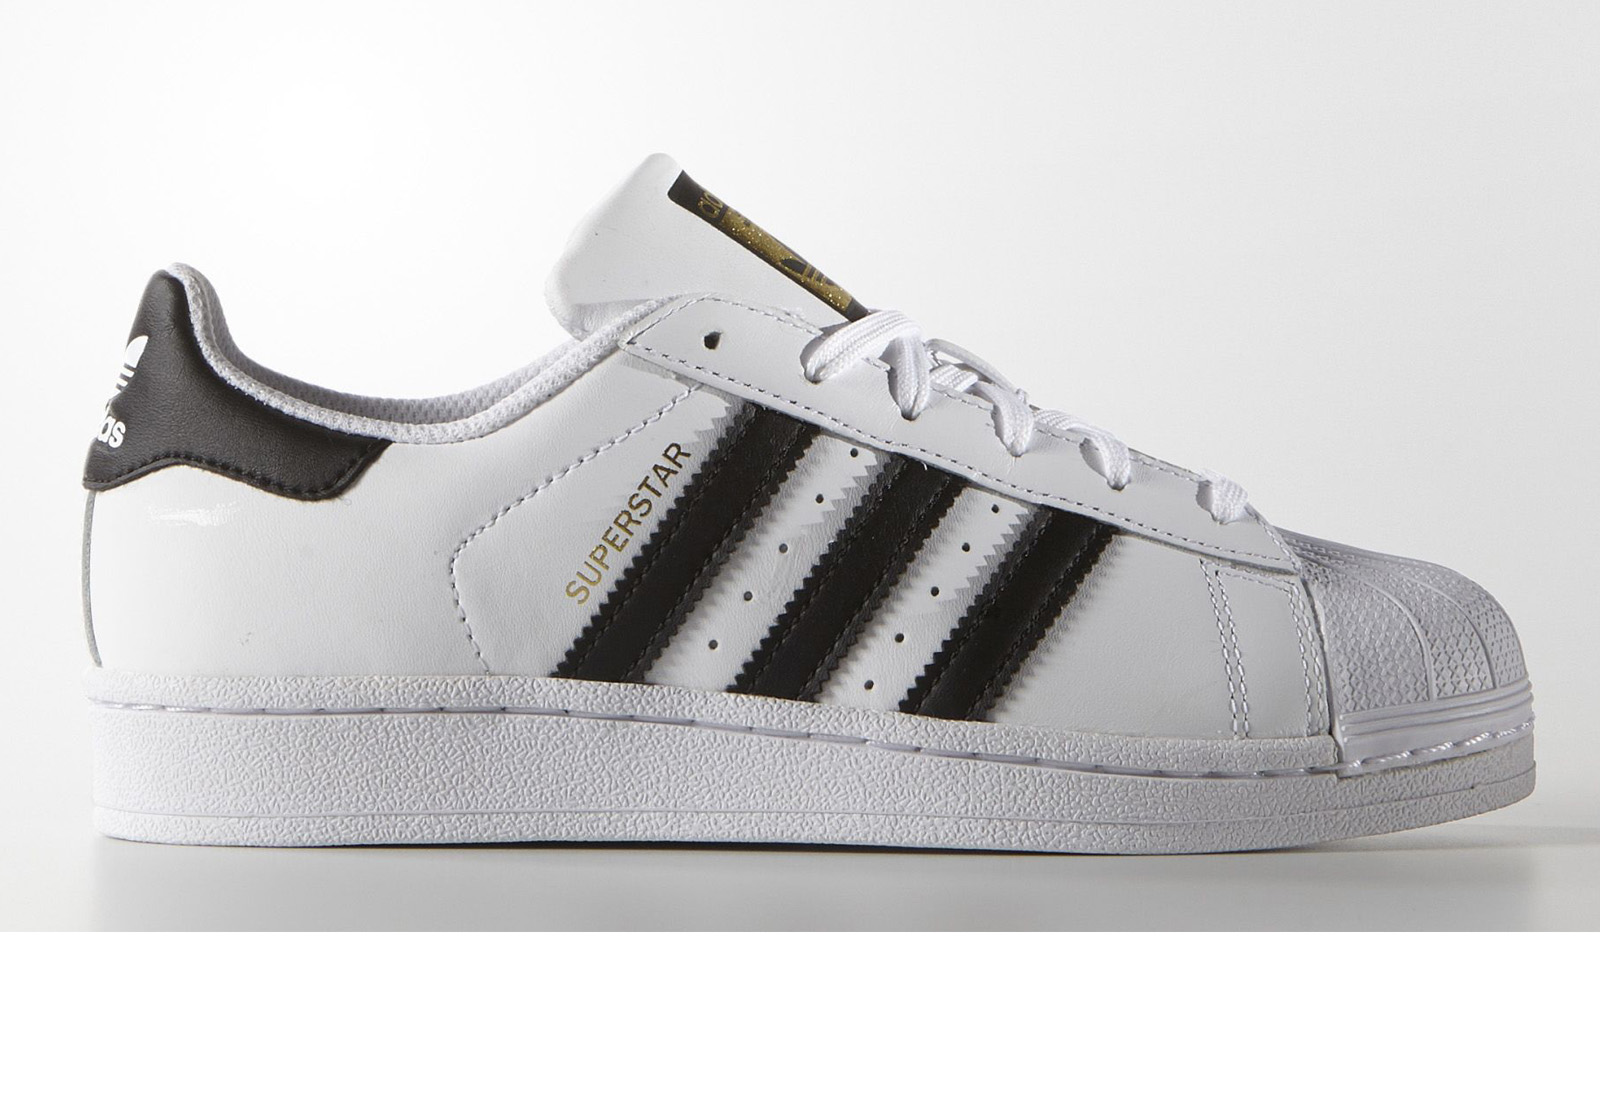 Adidas Superstar Shoes For Boys herbusinessuk.co.uk